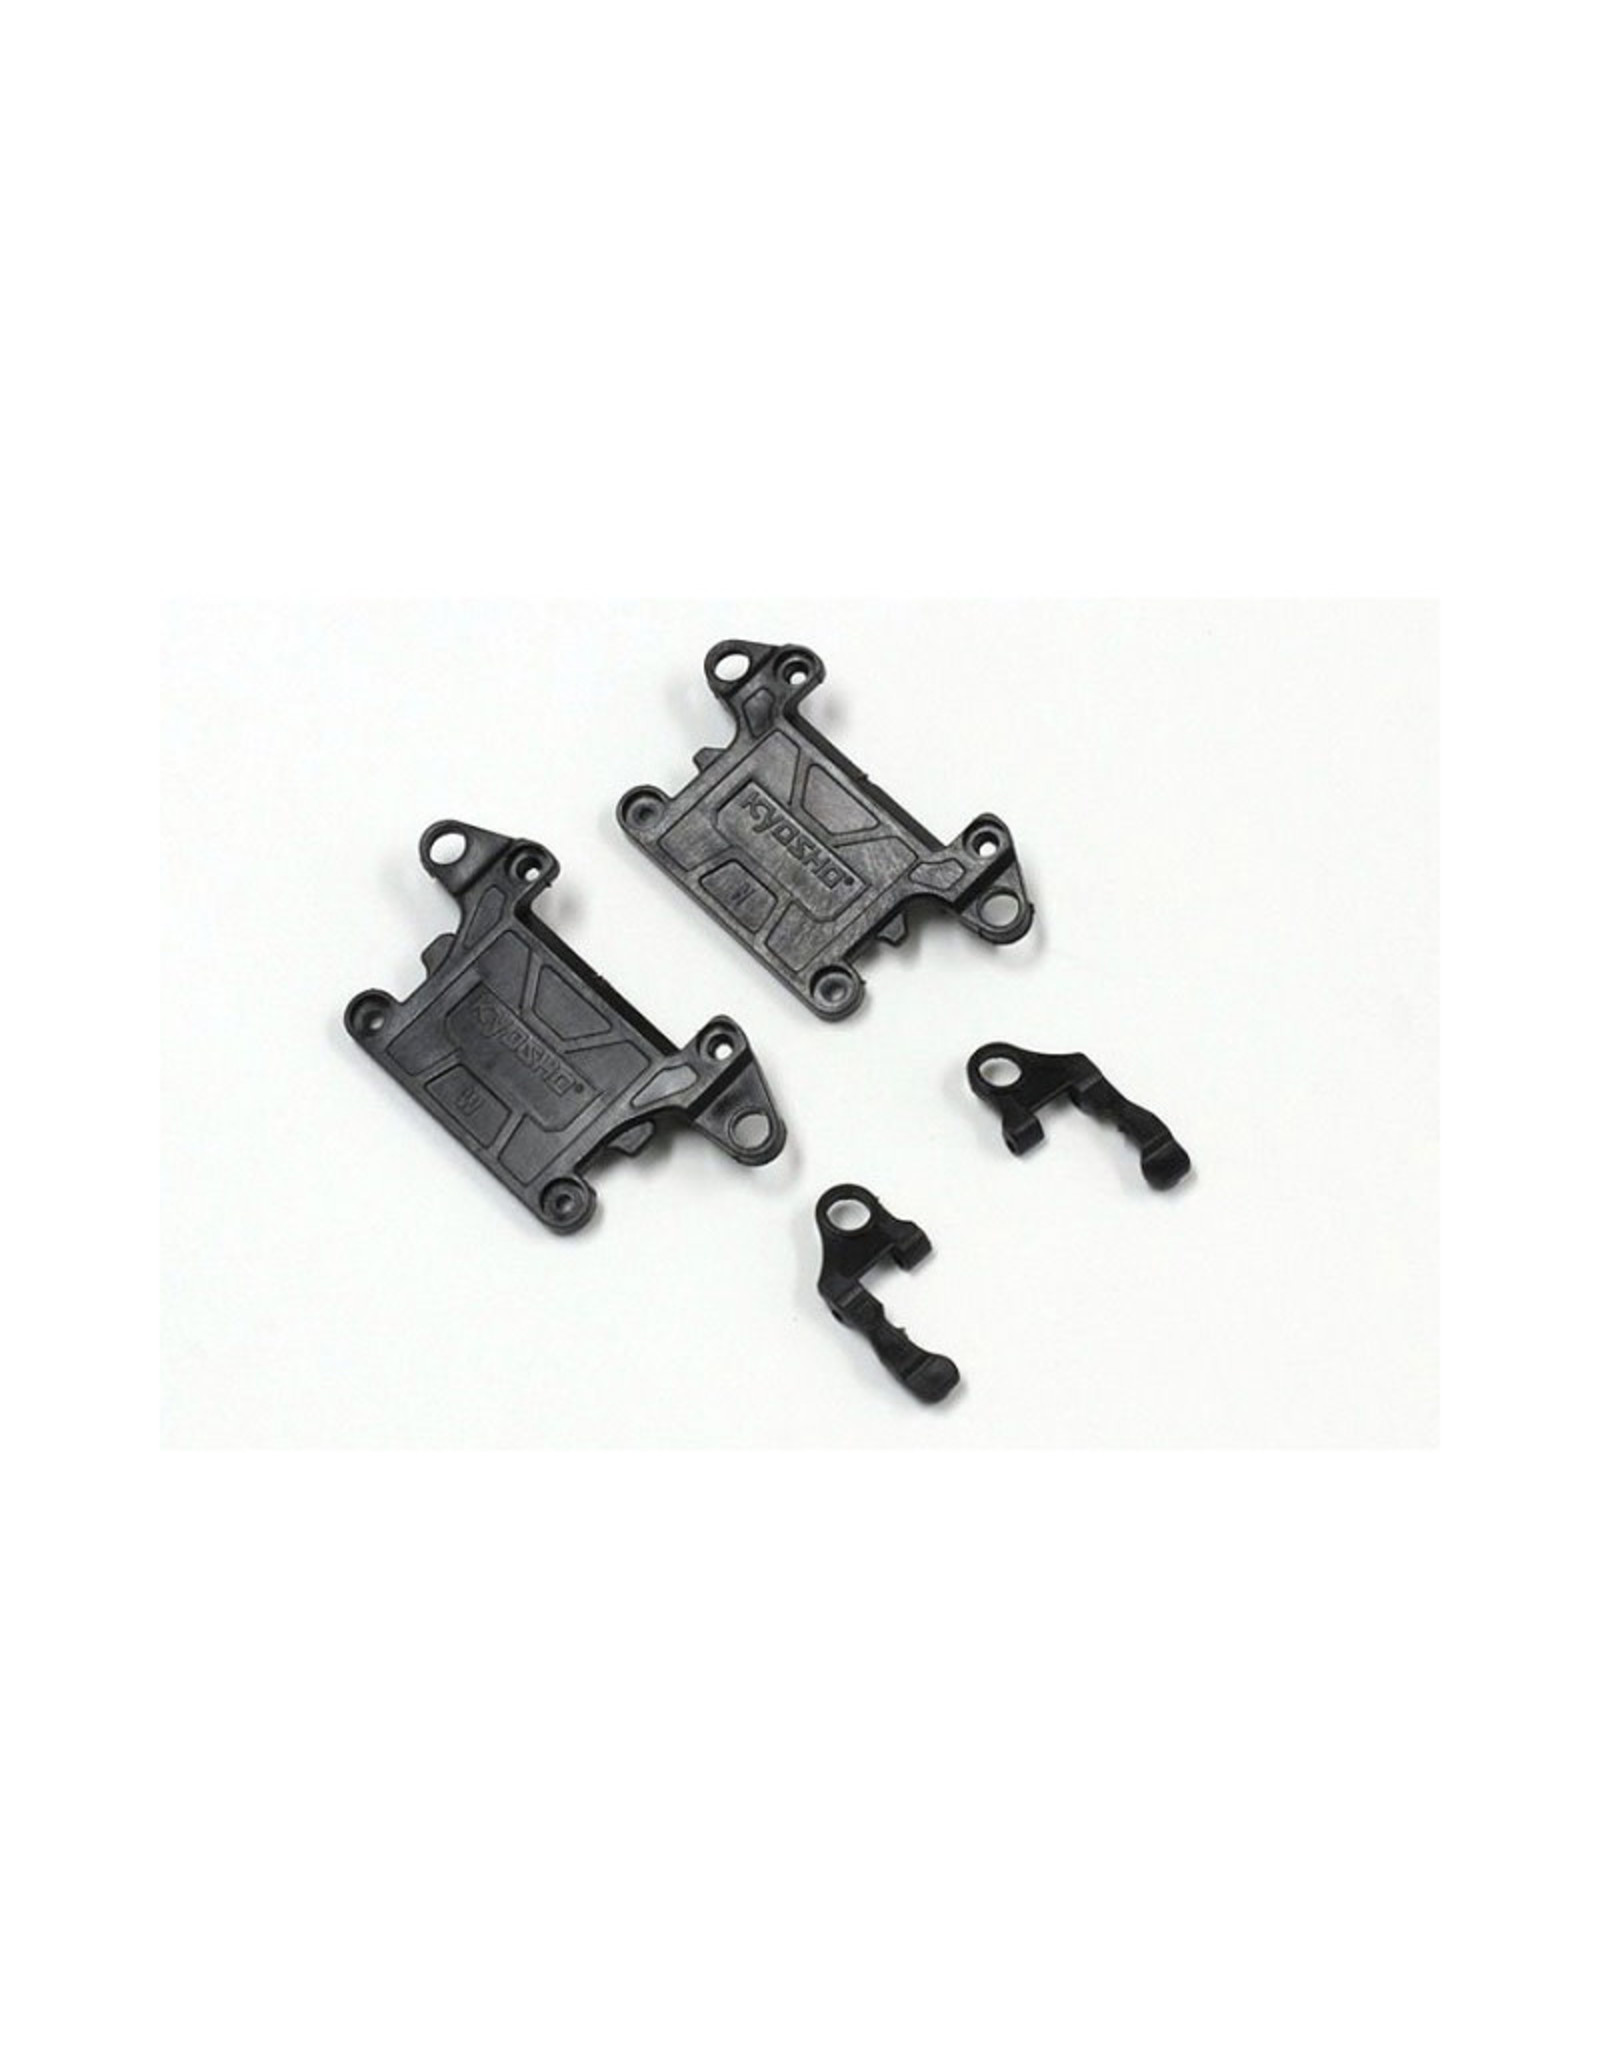 Kyosho Mini Z Hard Front Suspension Arm Set for Mr-03